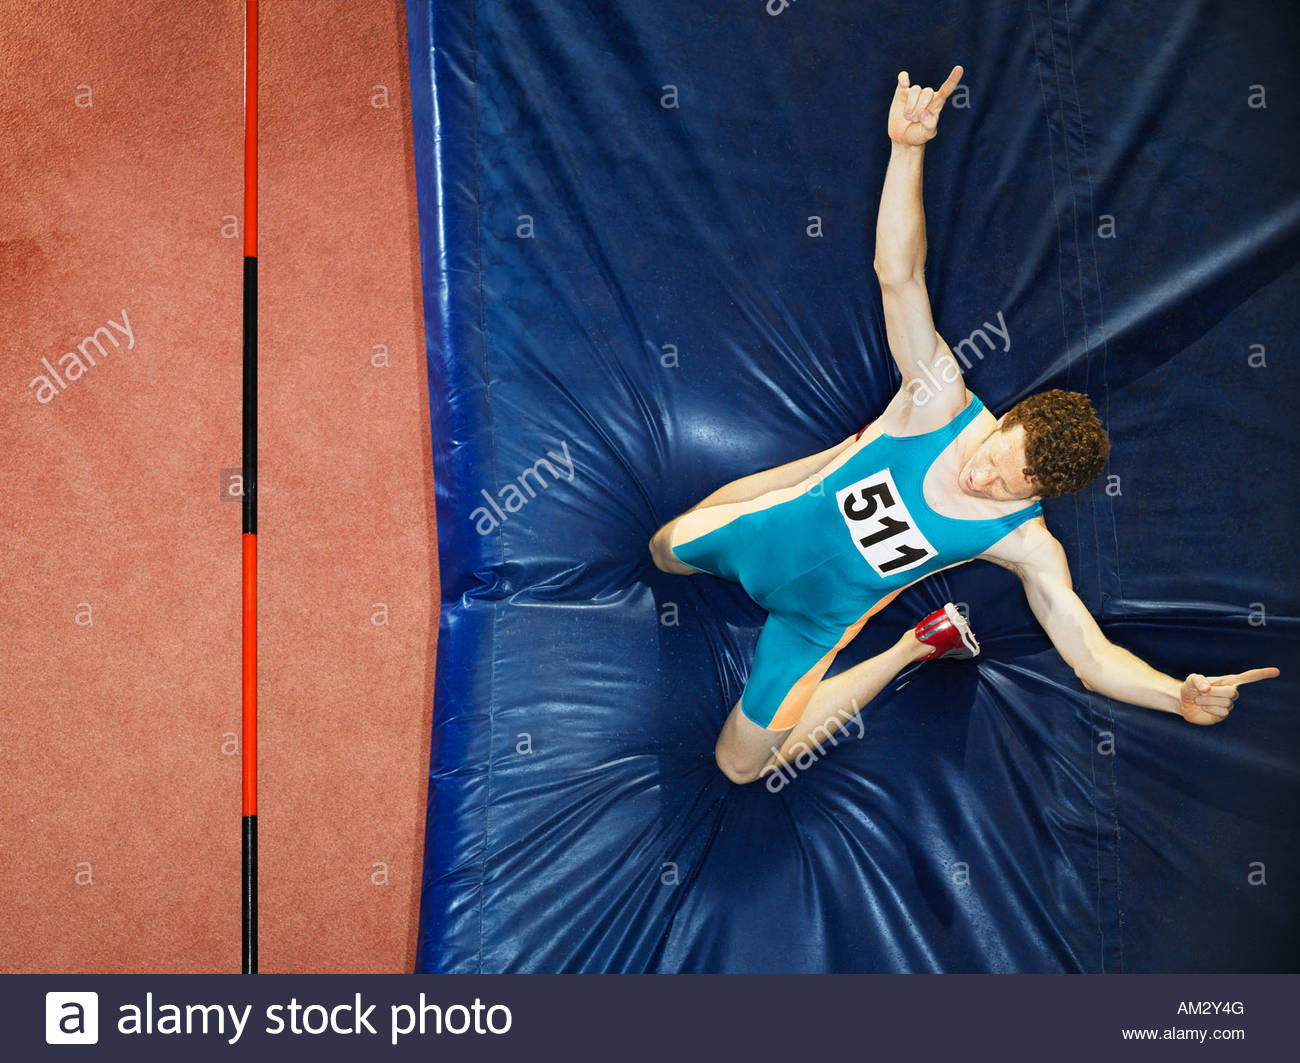 Athlete on a crash mat after high jumping - Stock Image